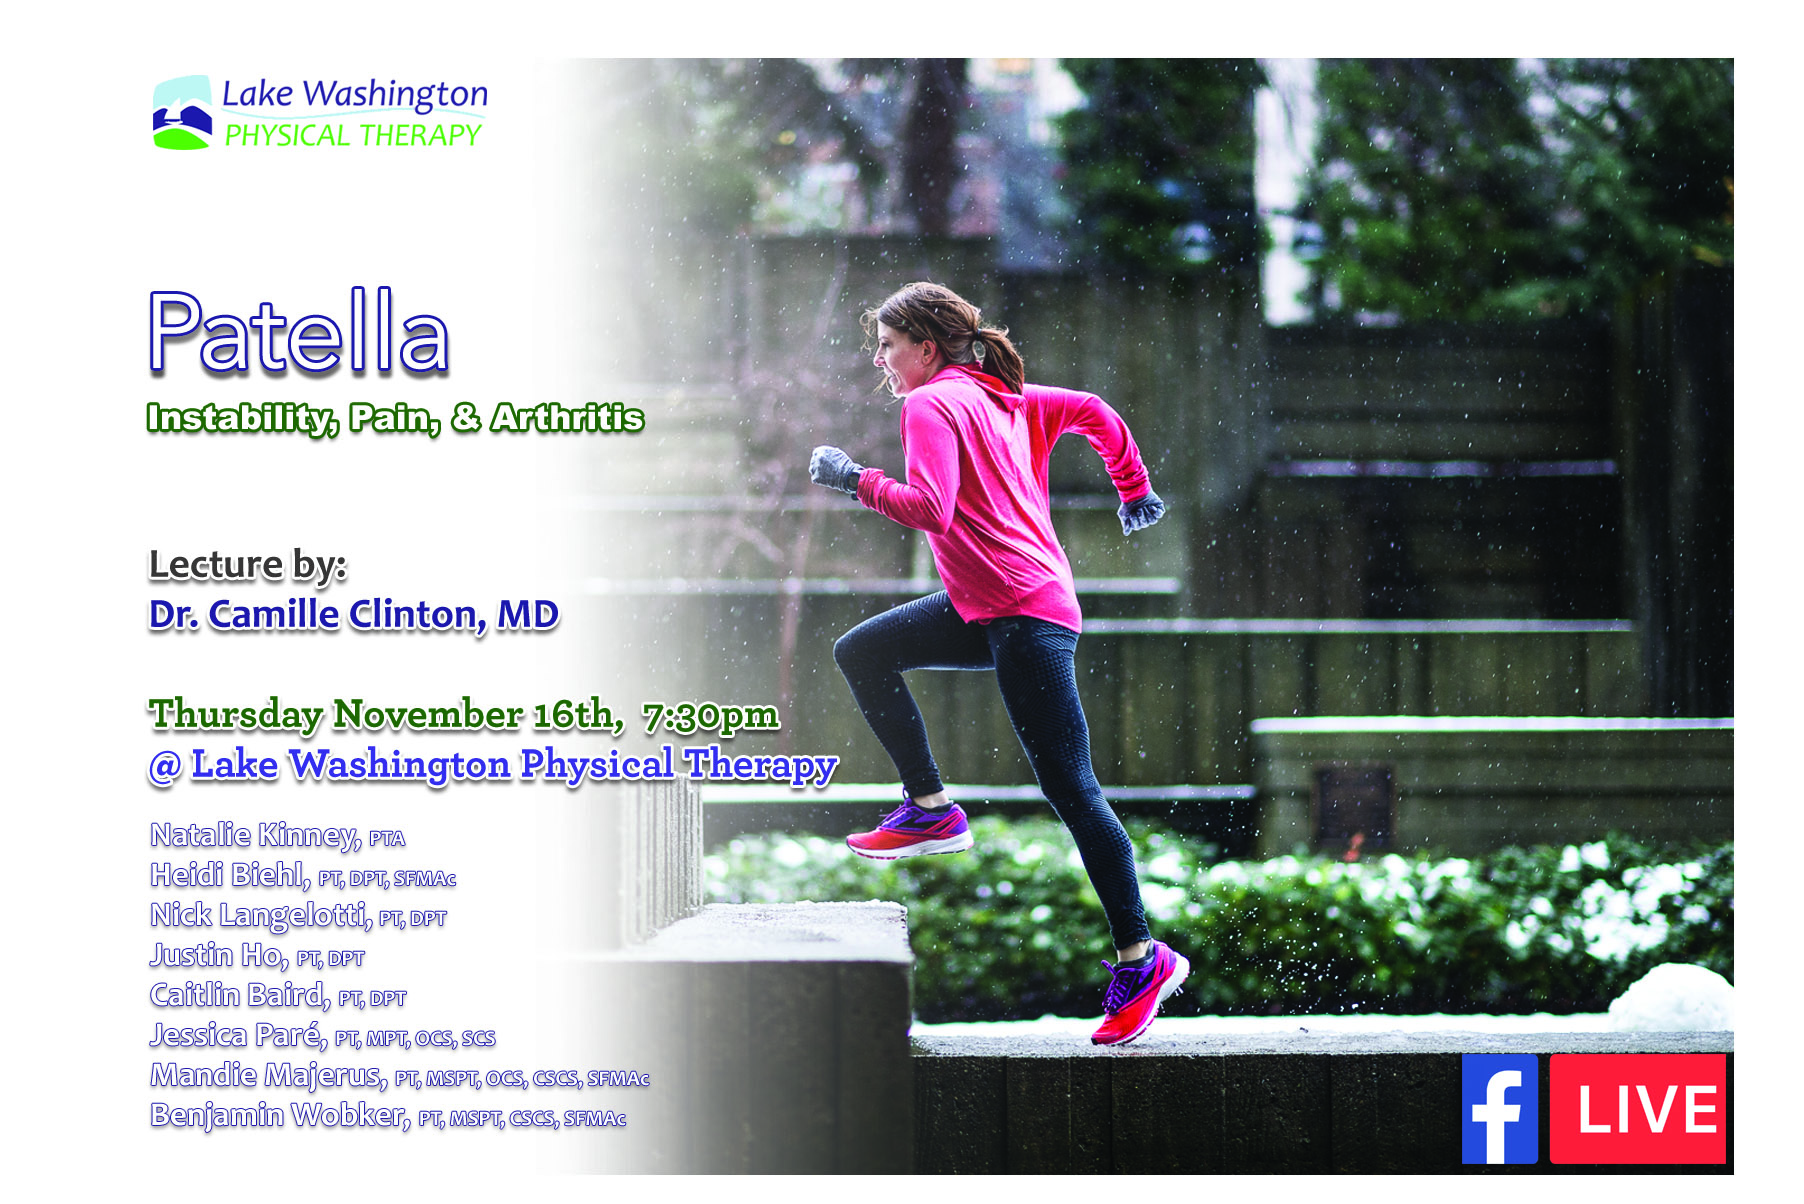 Dr. Camille Clinton, MDPatella Lecture - More on Dr. Clinton